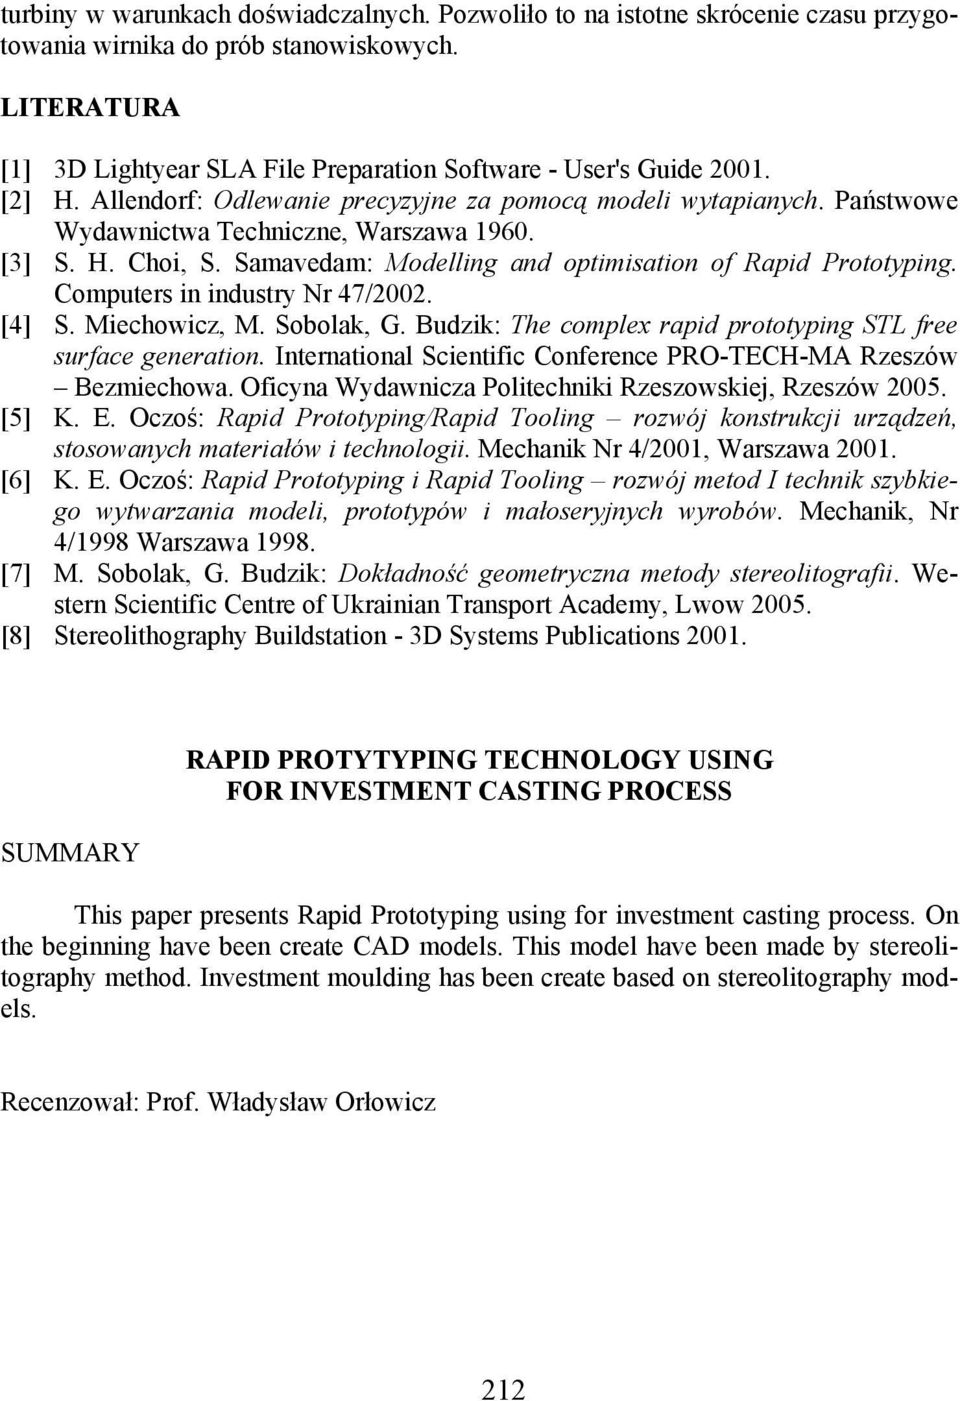 [3] S. H. Choi, S. Samavedam: Modelling and optimisation of Rapid Prototyping. Computers in industry Nr 47/2002. [4] S. Miechowicz, M. Sobolak, G.